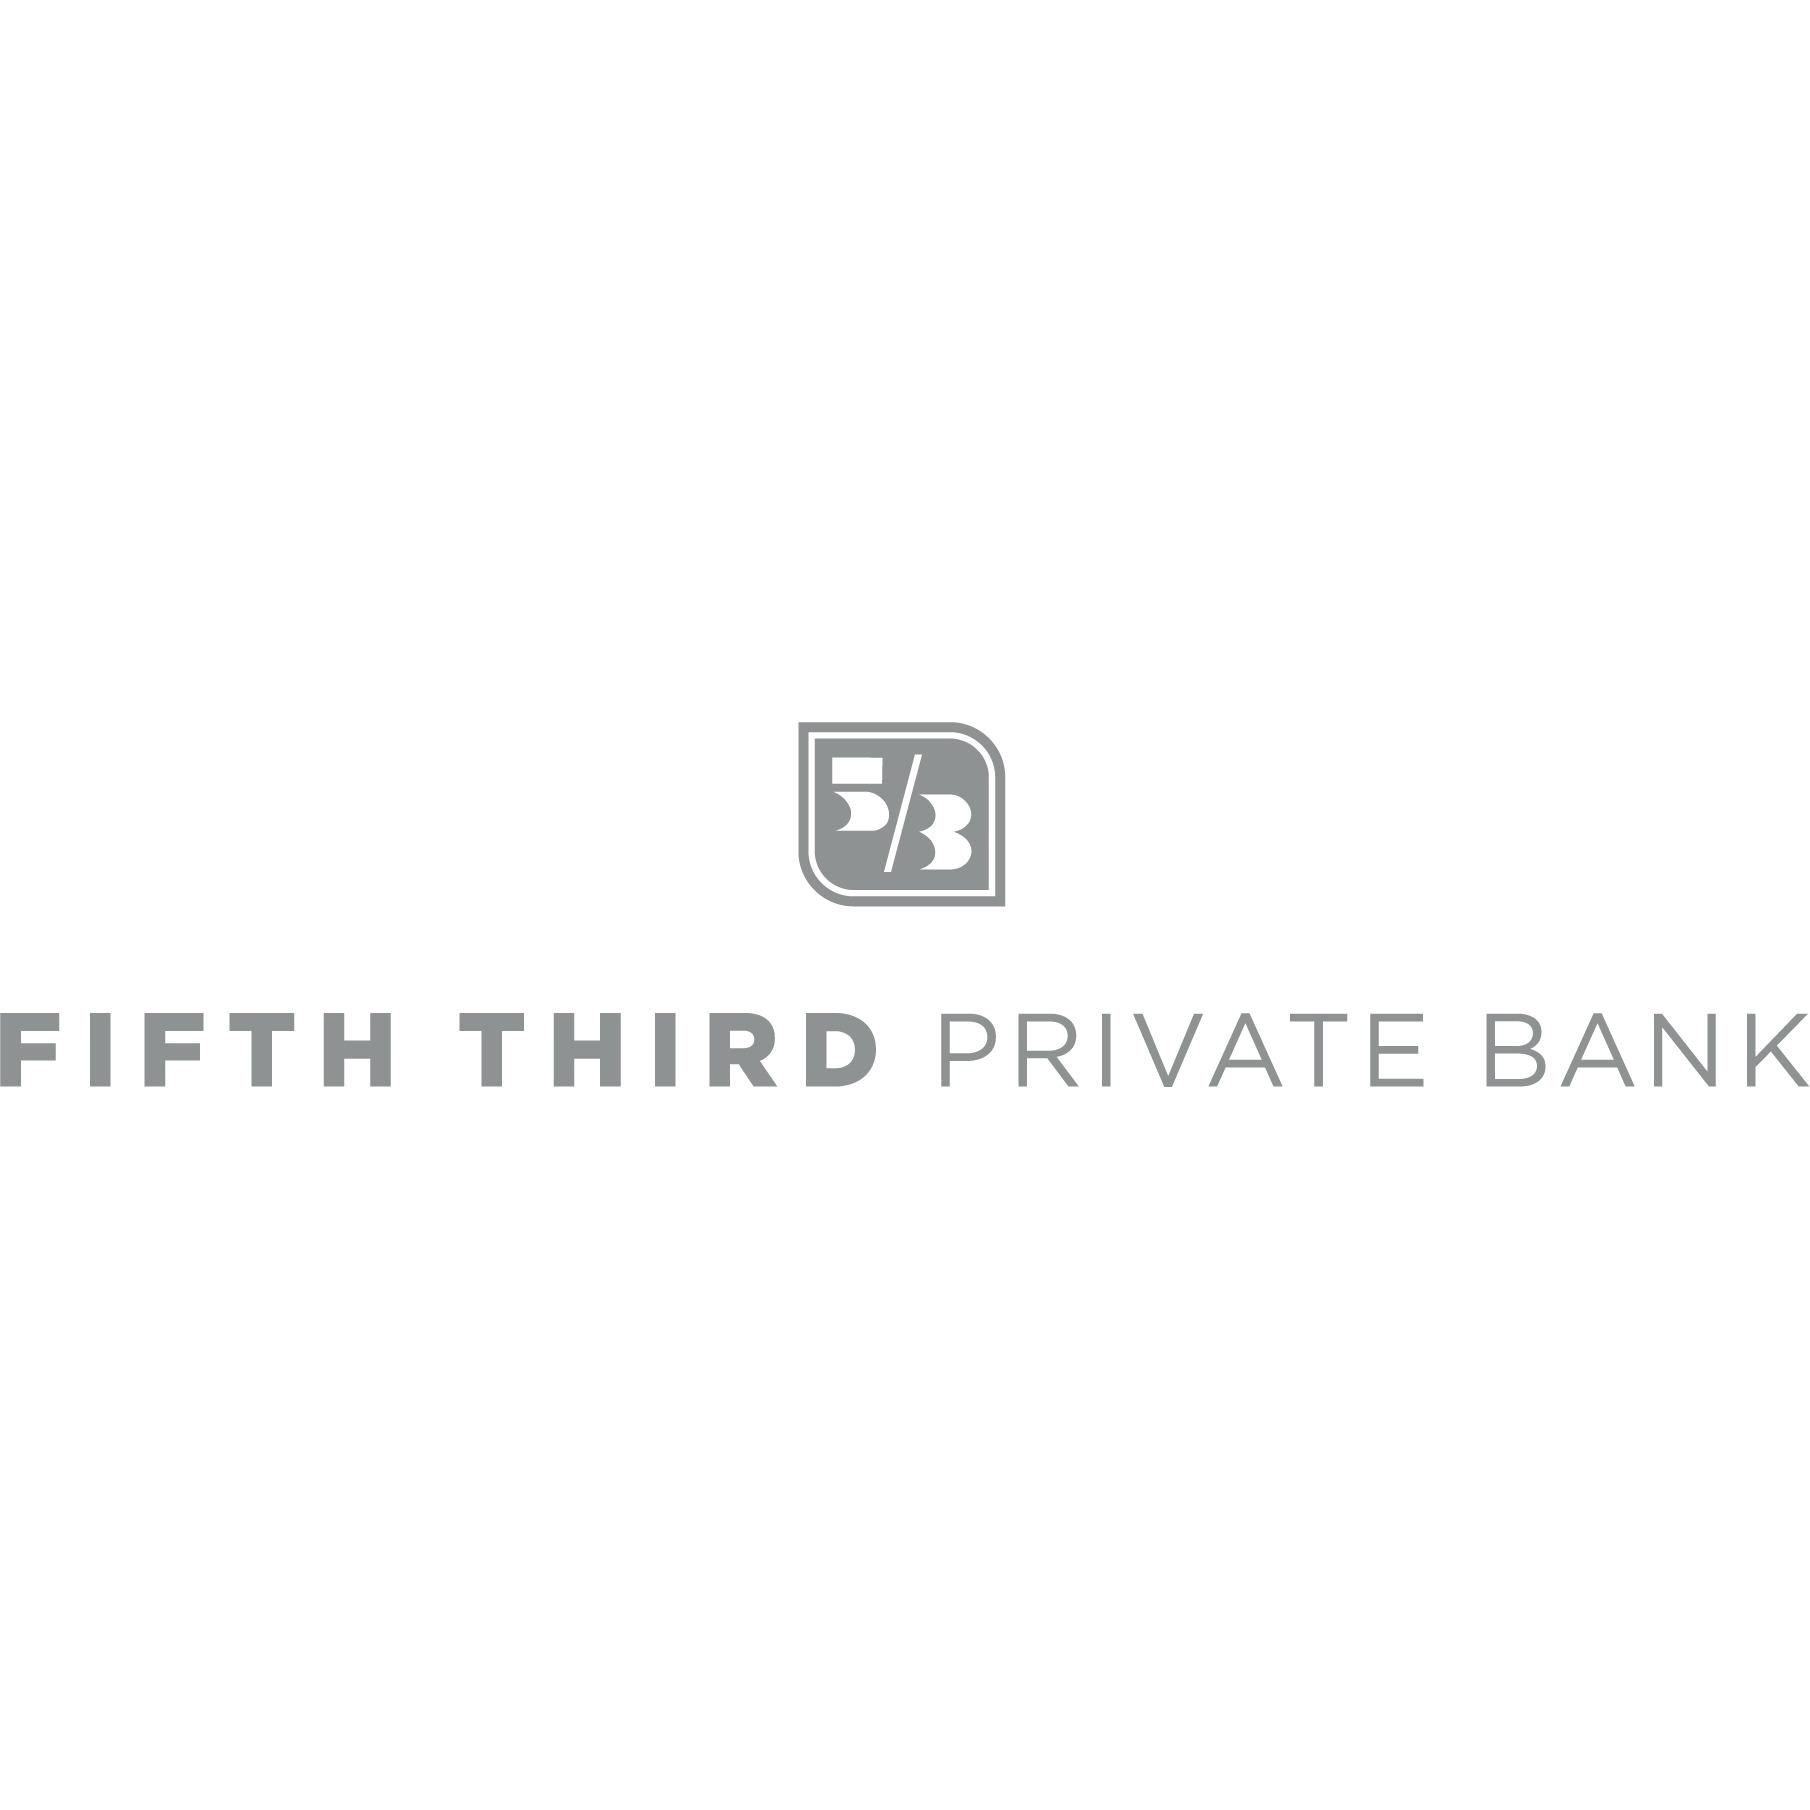 Fifth Third Private Bank - Julio Driggs